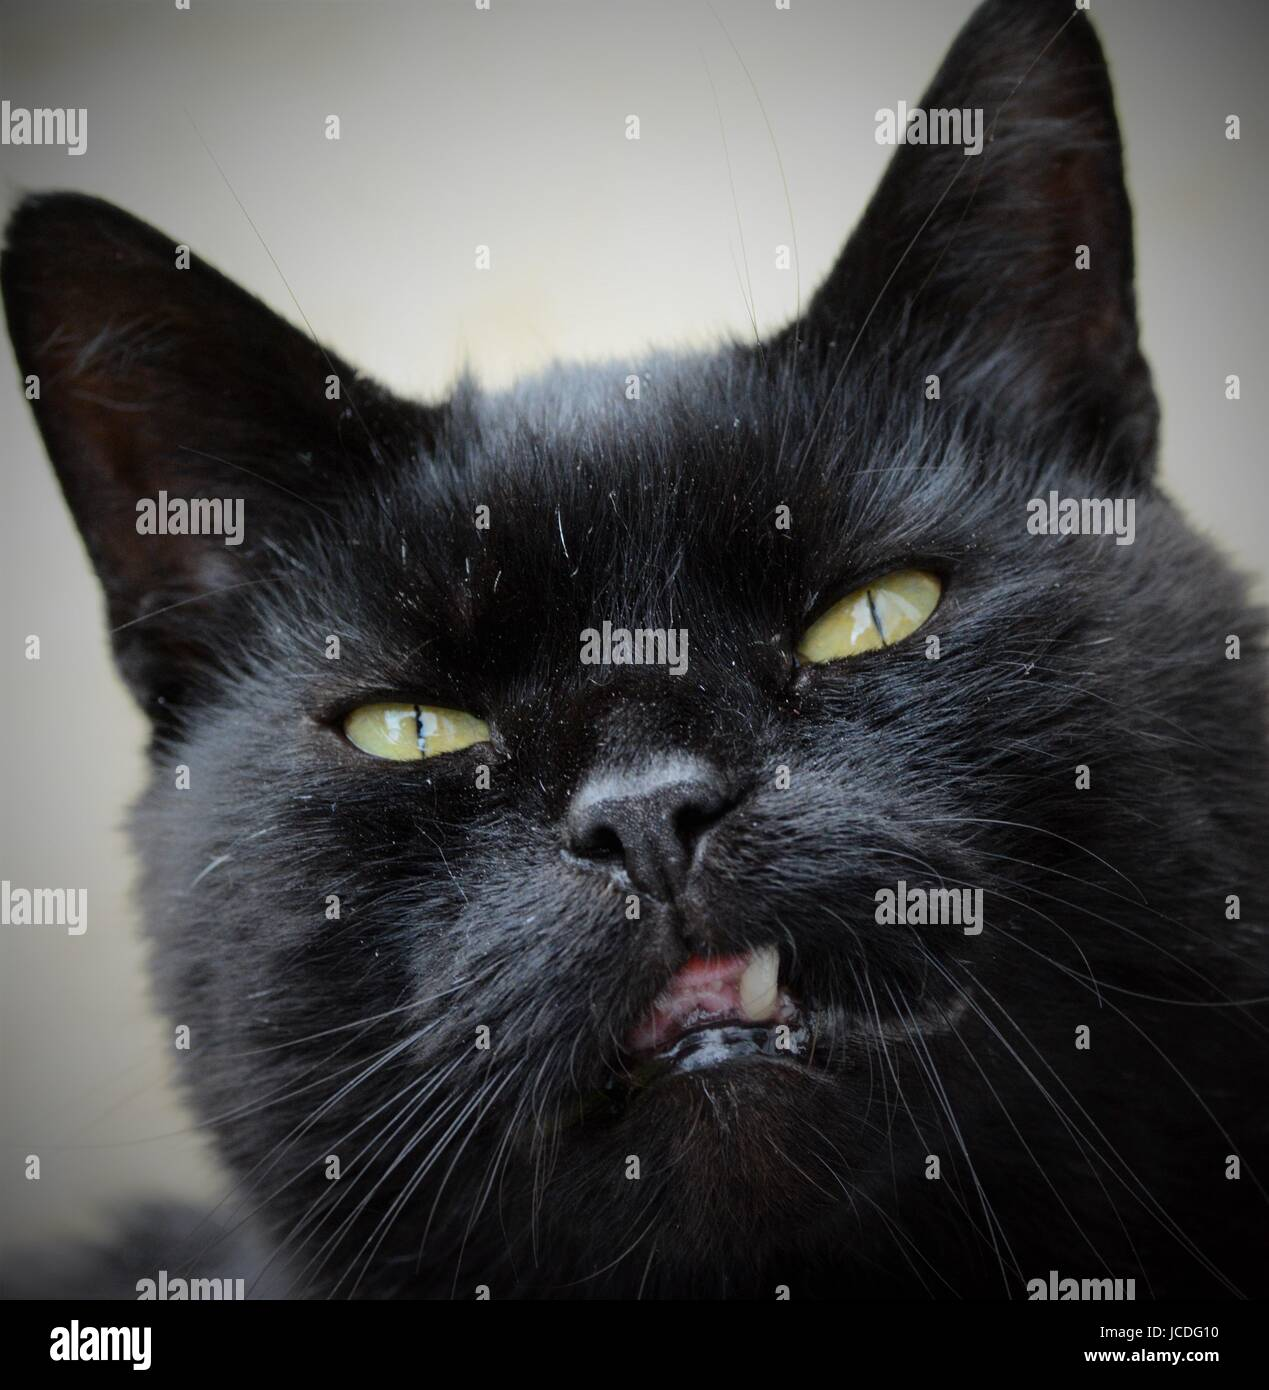 Close-up of black cat with green eyes - Stock Image